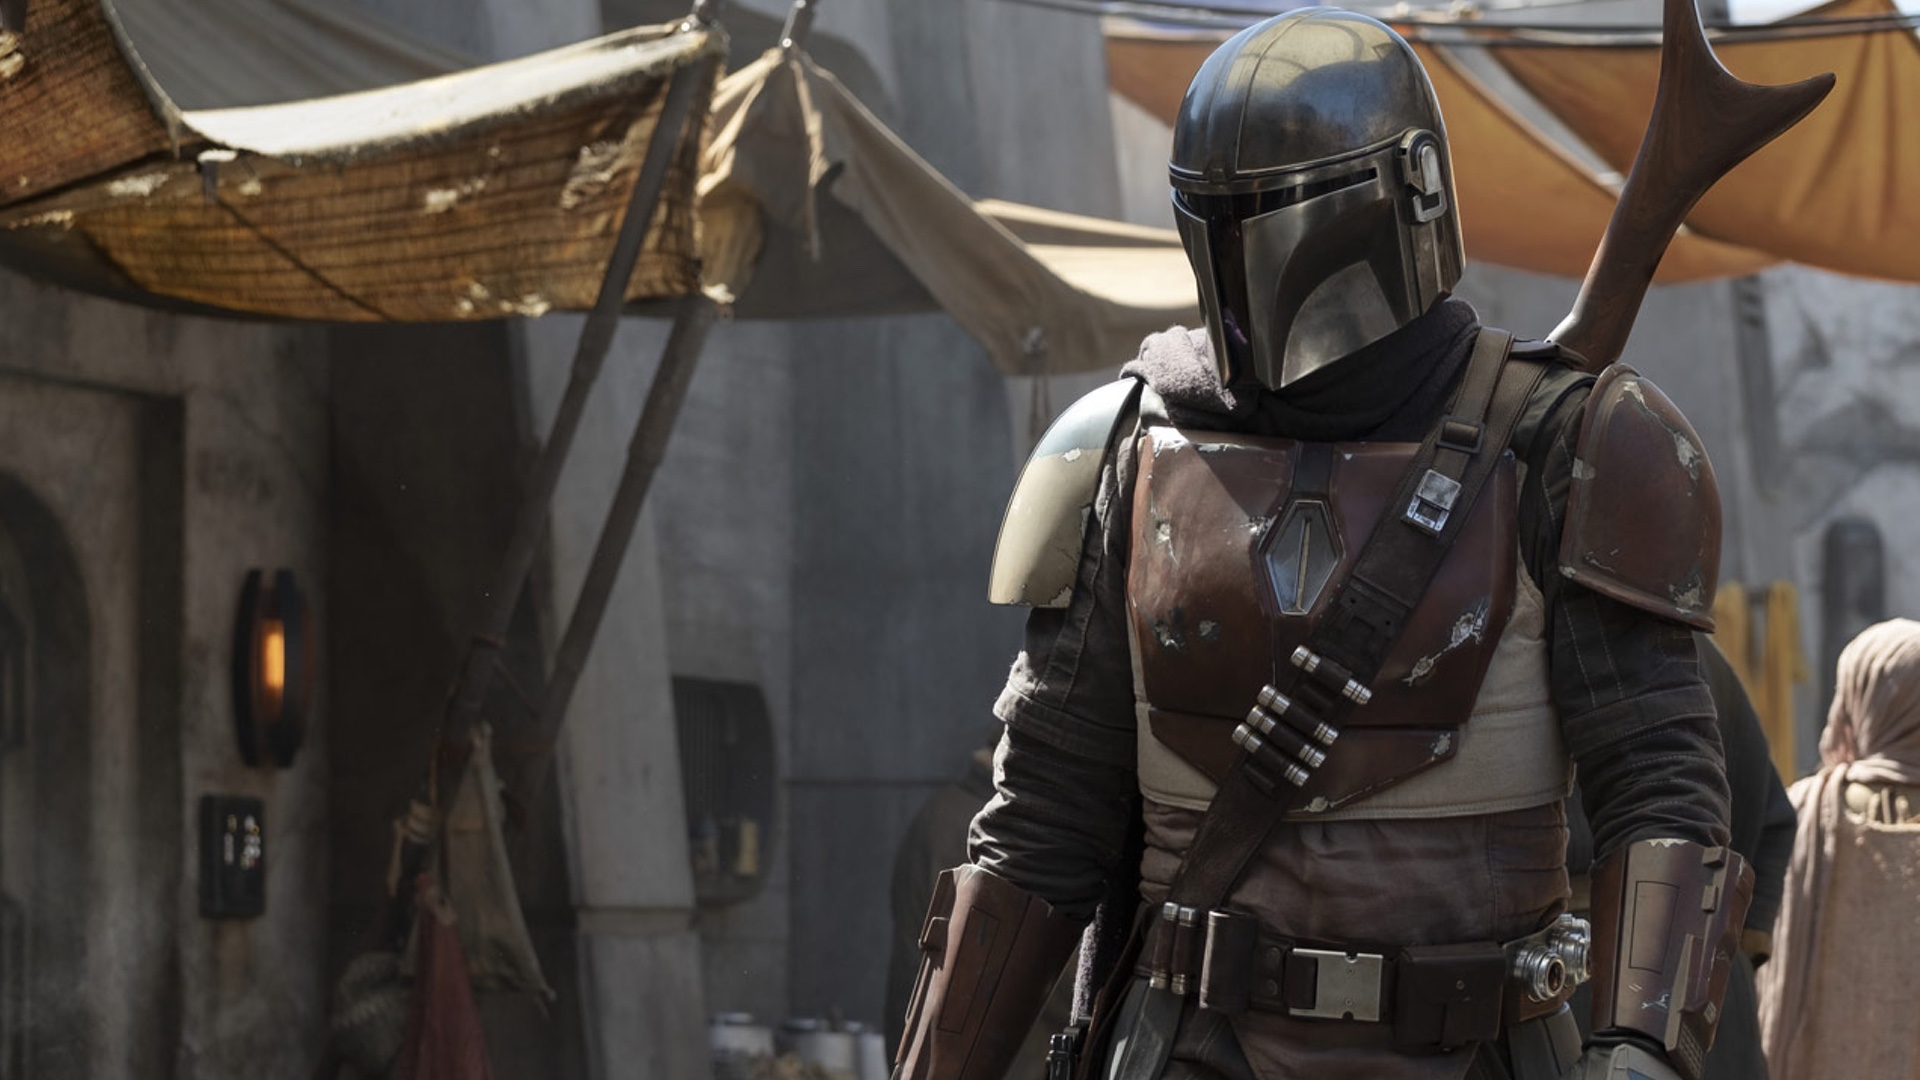 the-mandalorian-directors-taika-waititi-and-bryce-dallas-howard-are-also-rumored-to-appear-in-the-series-social.jpg